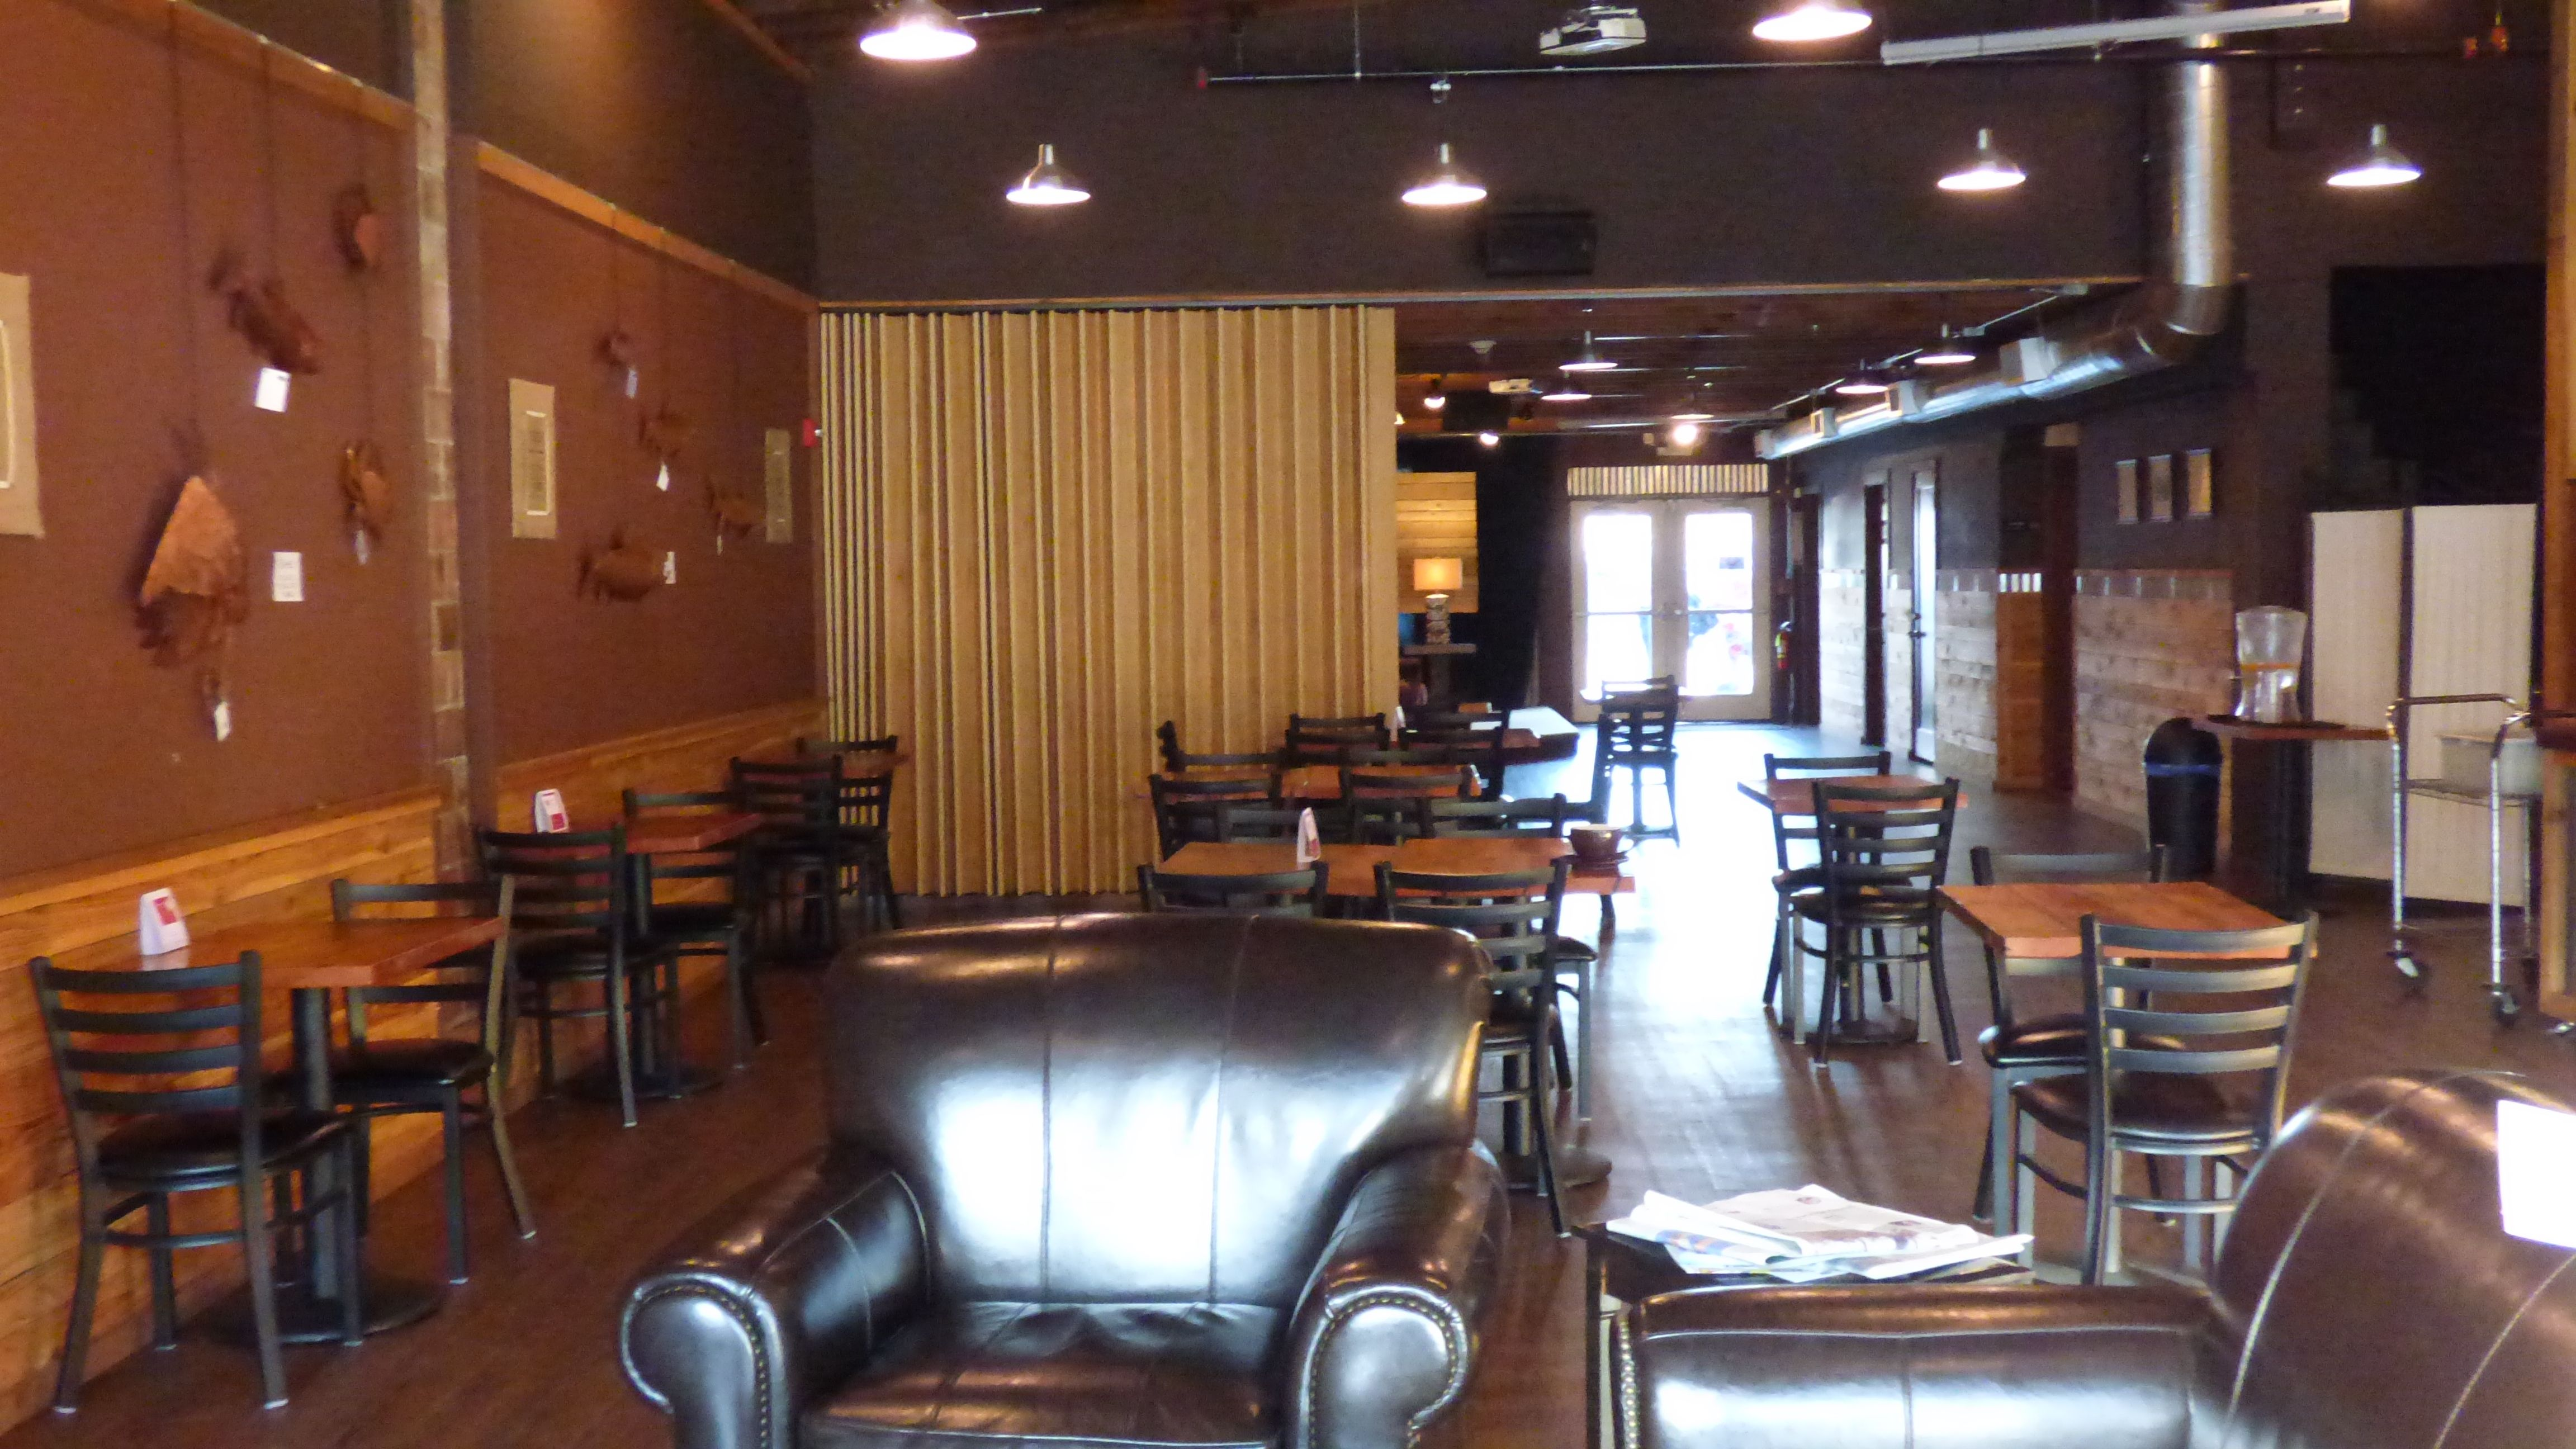 The Coffee Oasis Bremerton Cozy Seating Kitsap Charity Kitsapcares Bremerton Poulsbo Port Orchard Photo Ken Rury S Coffee Shop Business Cozy Seats Home